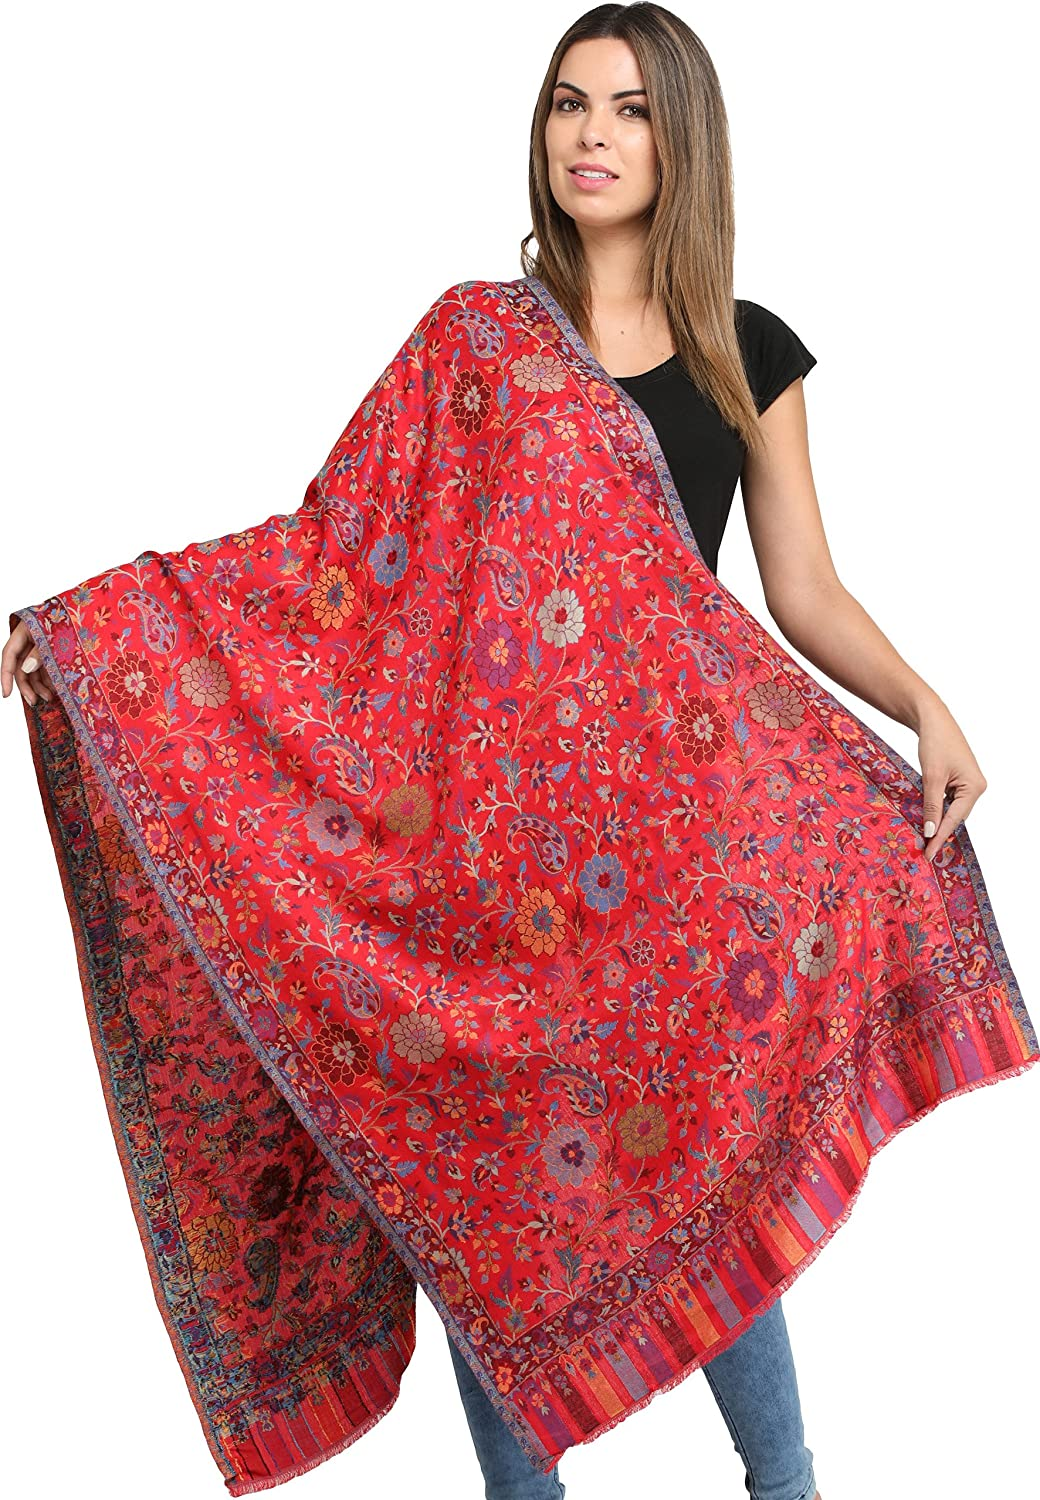 Exotic India Kani Jamawar Stole with Woven Flowers and Paiselys in Multi-Color Thread